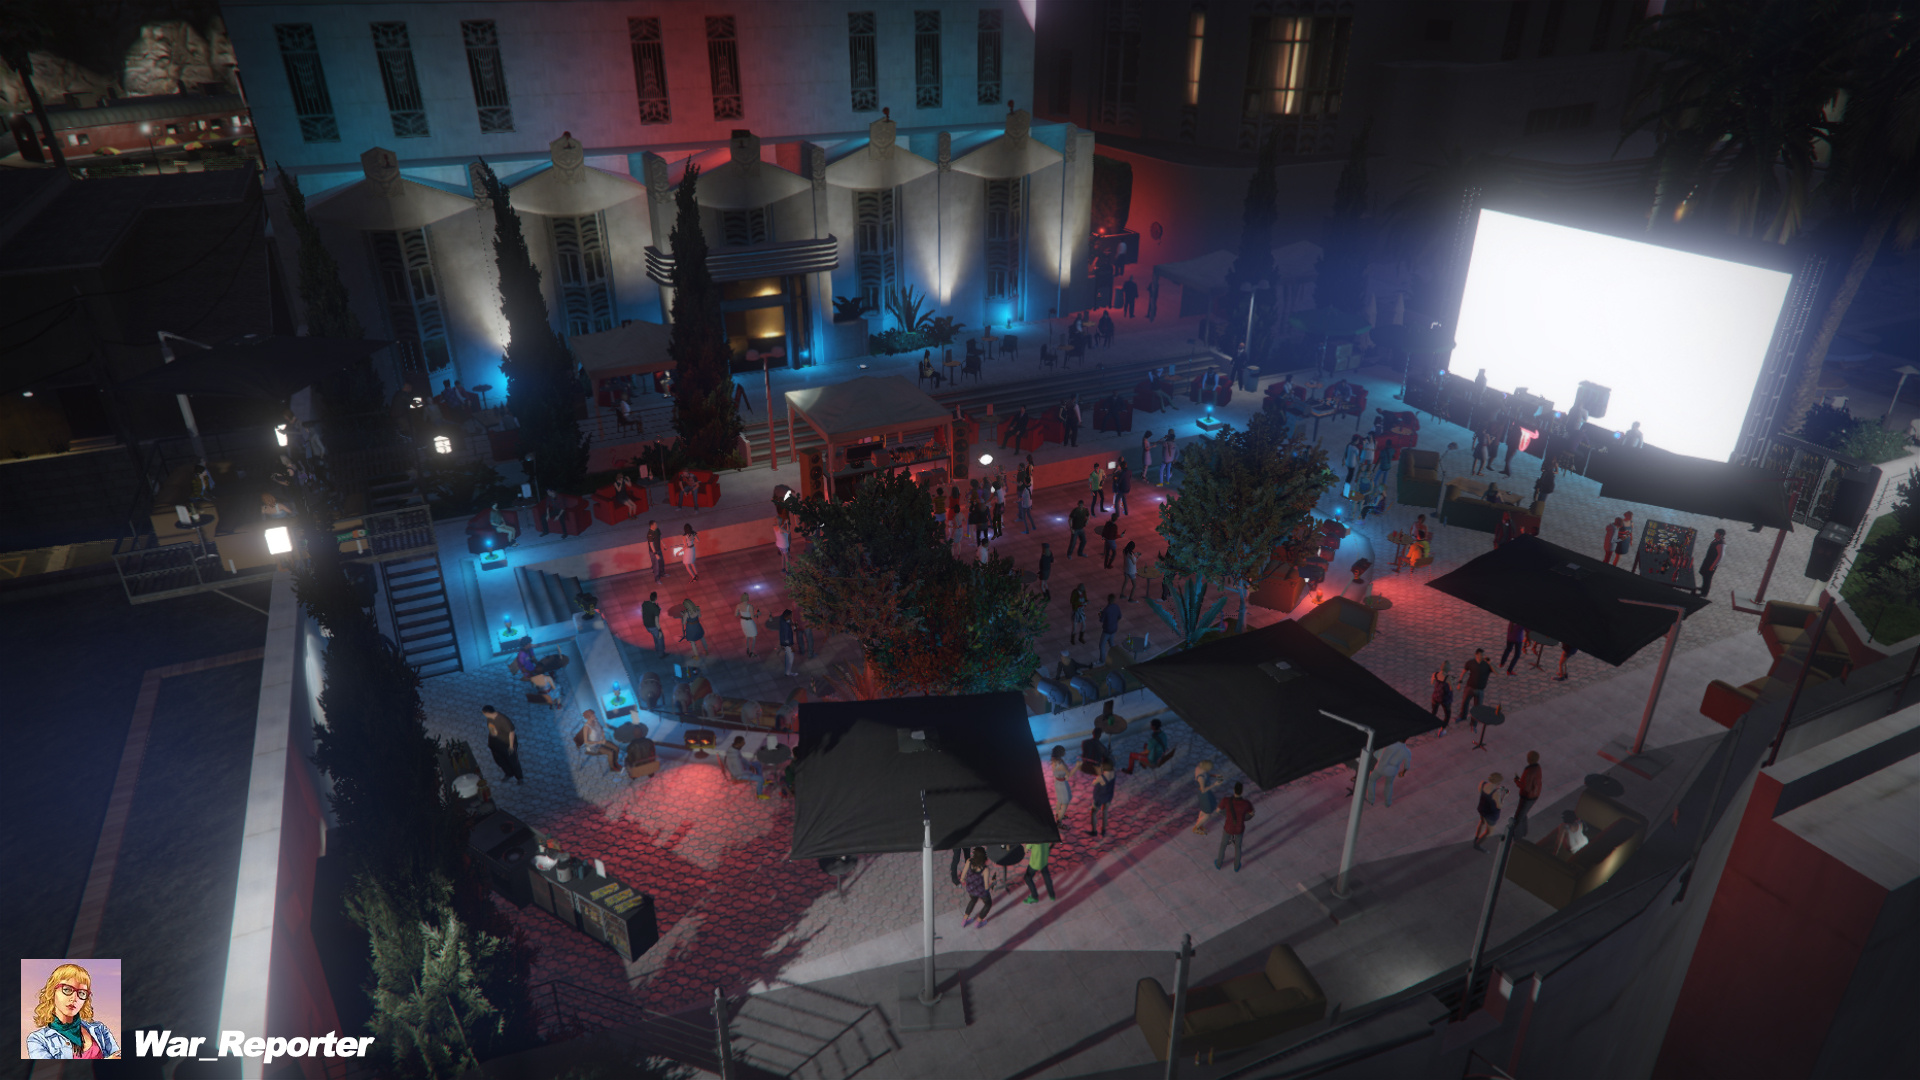 8358 Night Club Scene Gta5 Mods Com